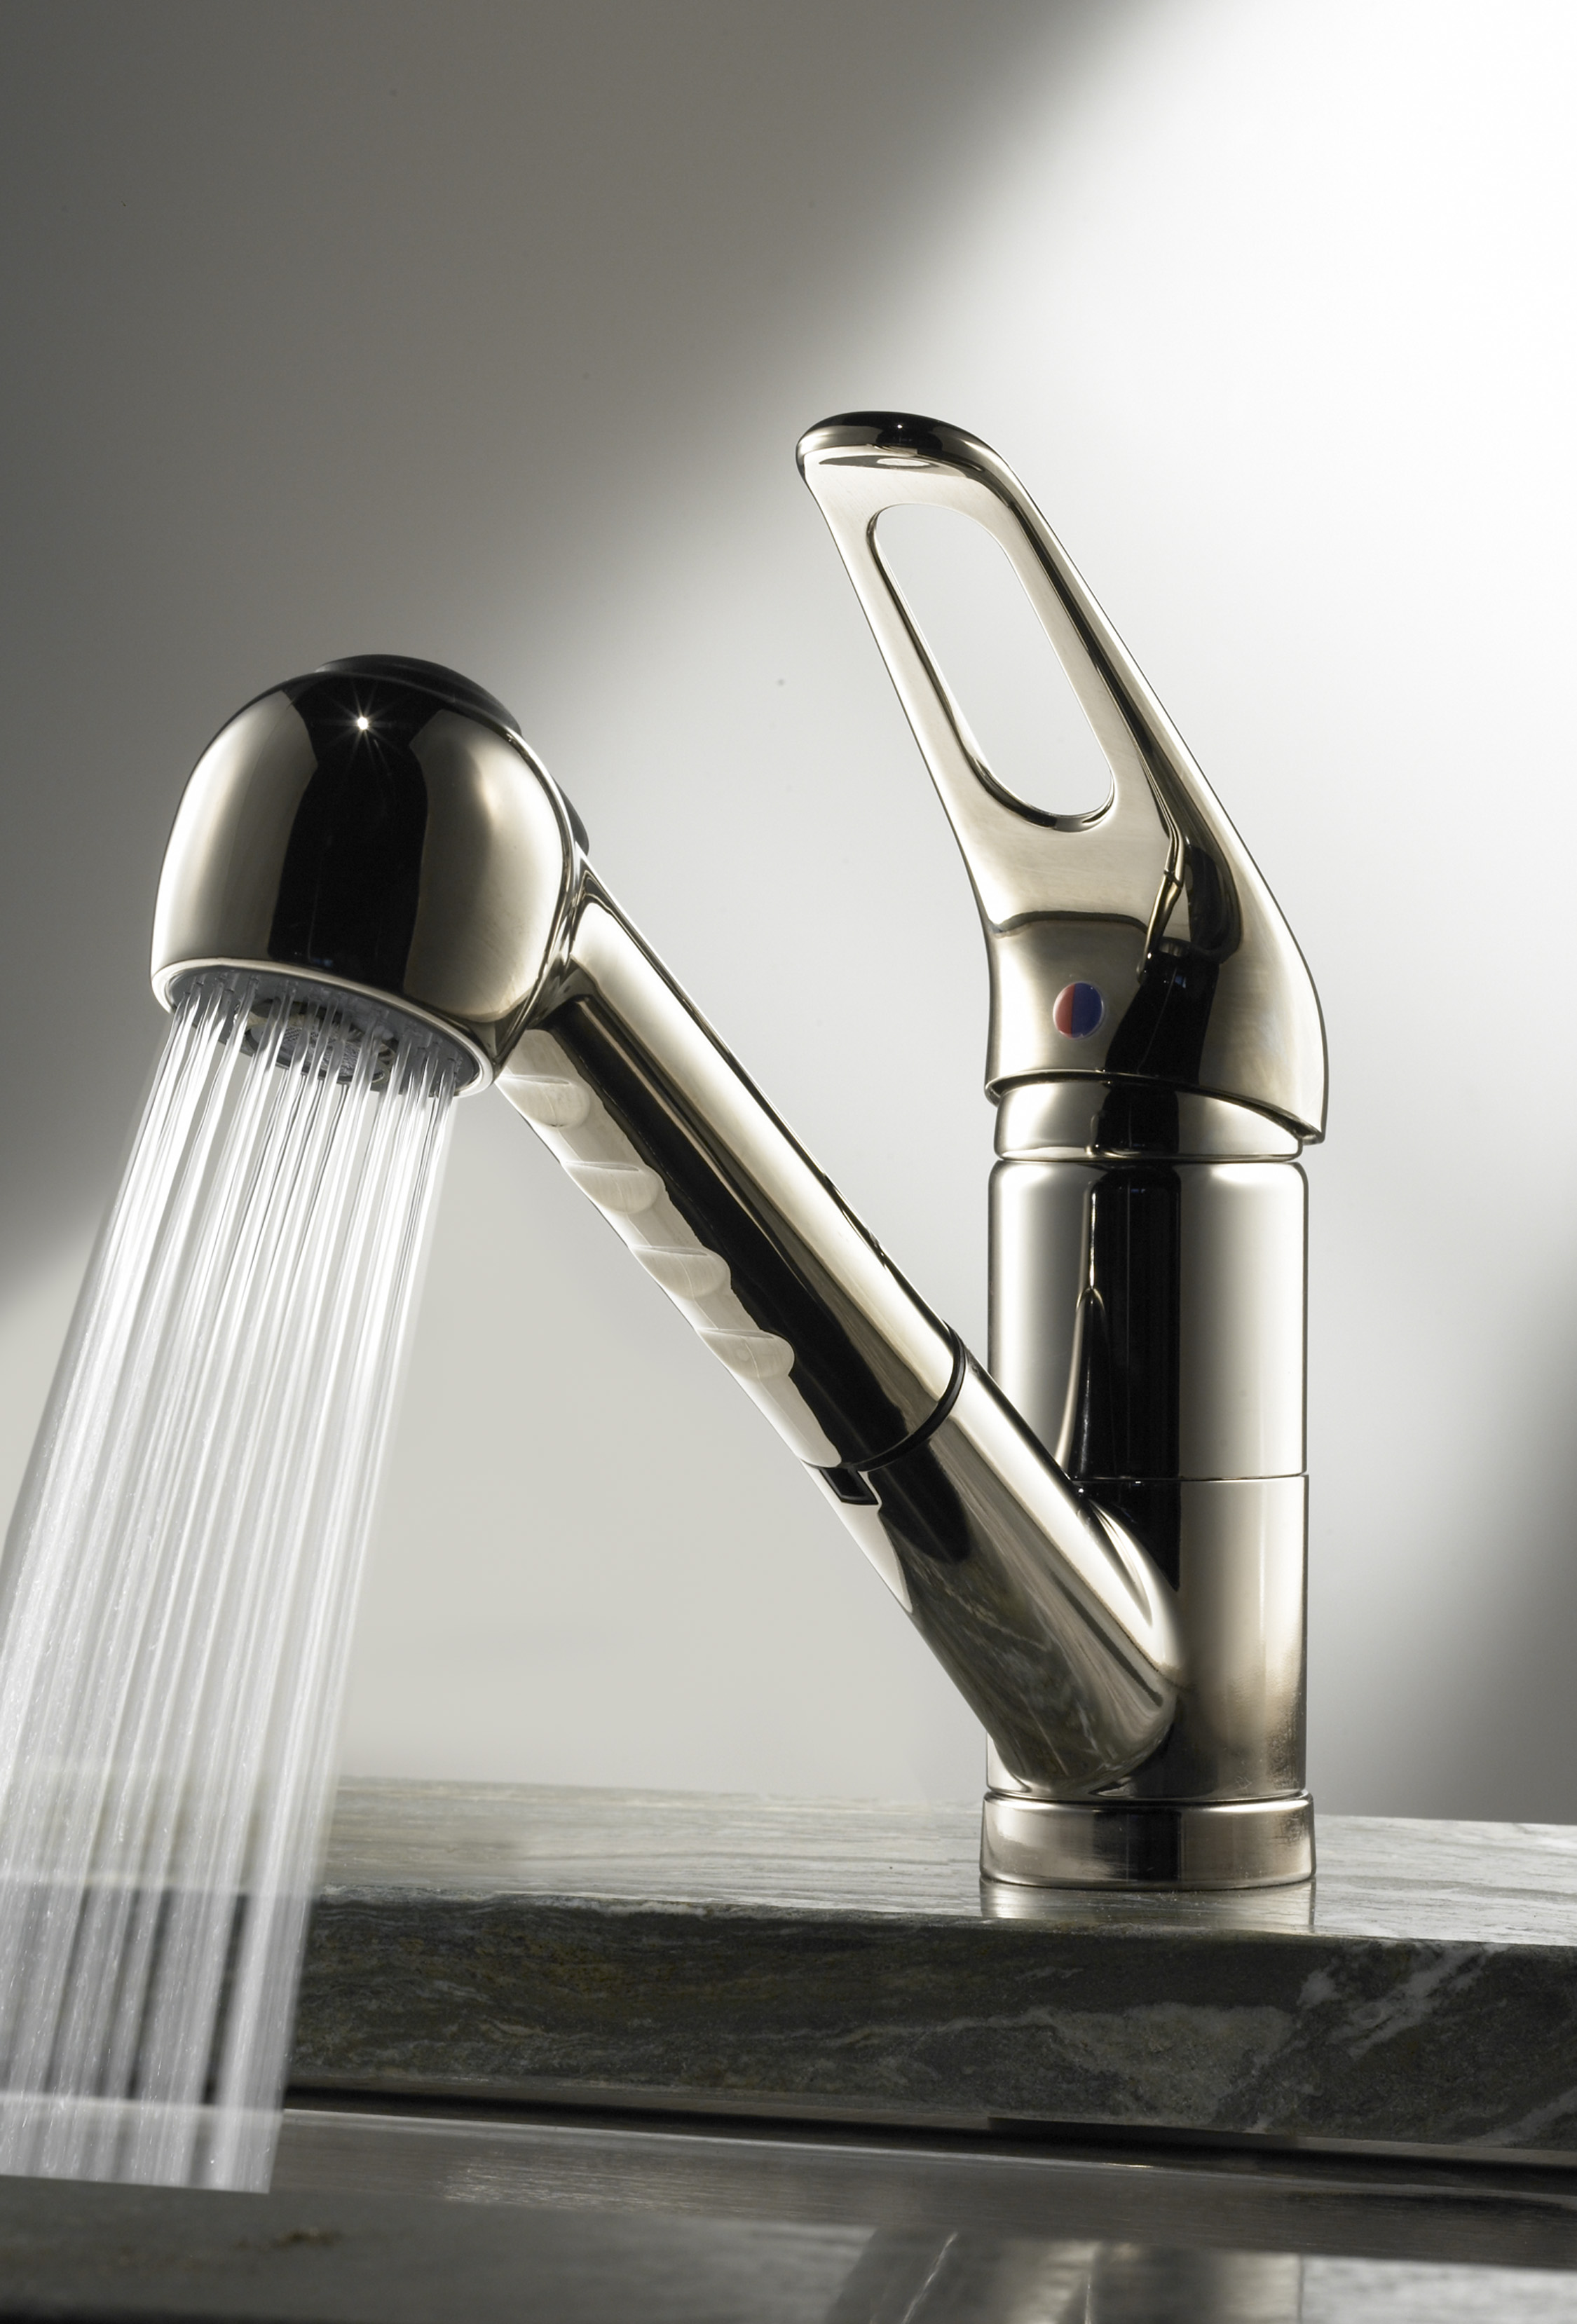 Faucets And Fixtures : The Kitchen Sink and Faucet: Choosing a Killer Combination ...